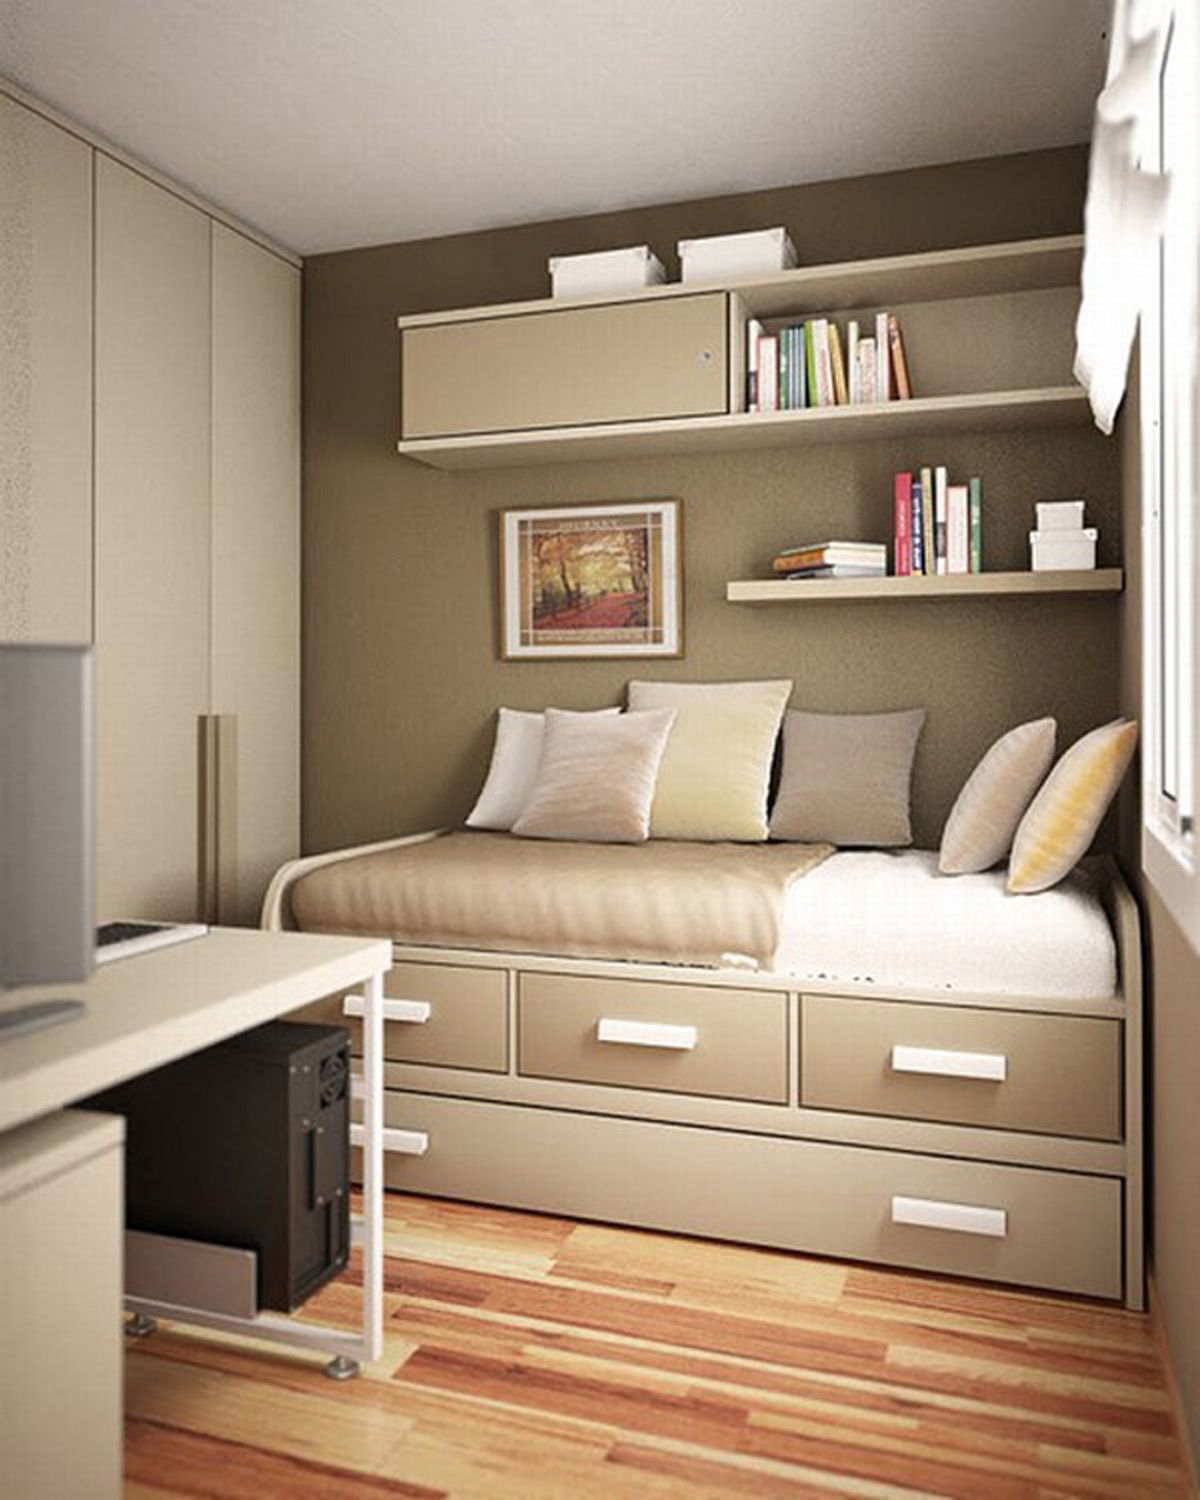 contemporary small bedroom ideas | bedrooms